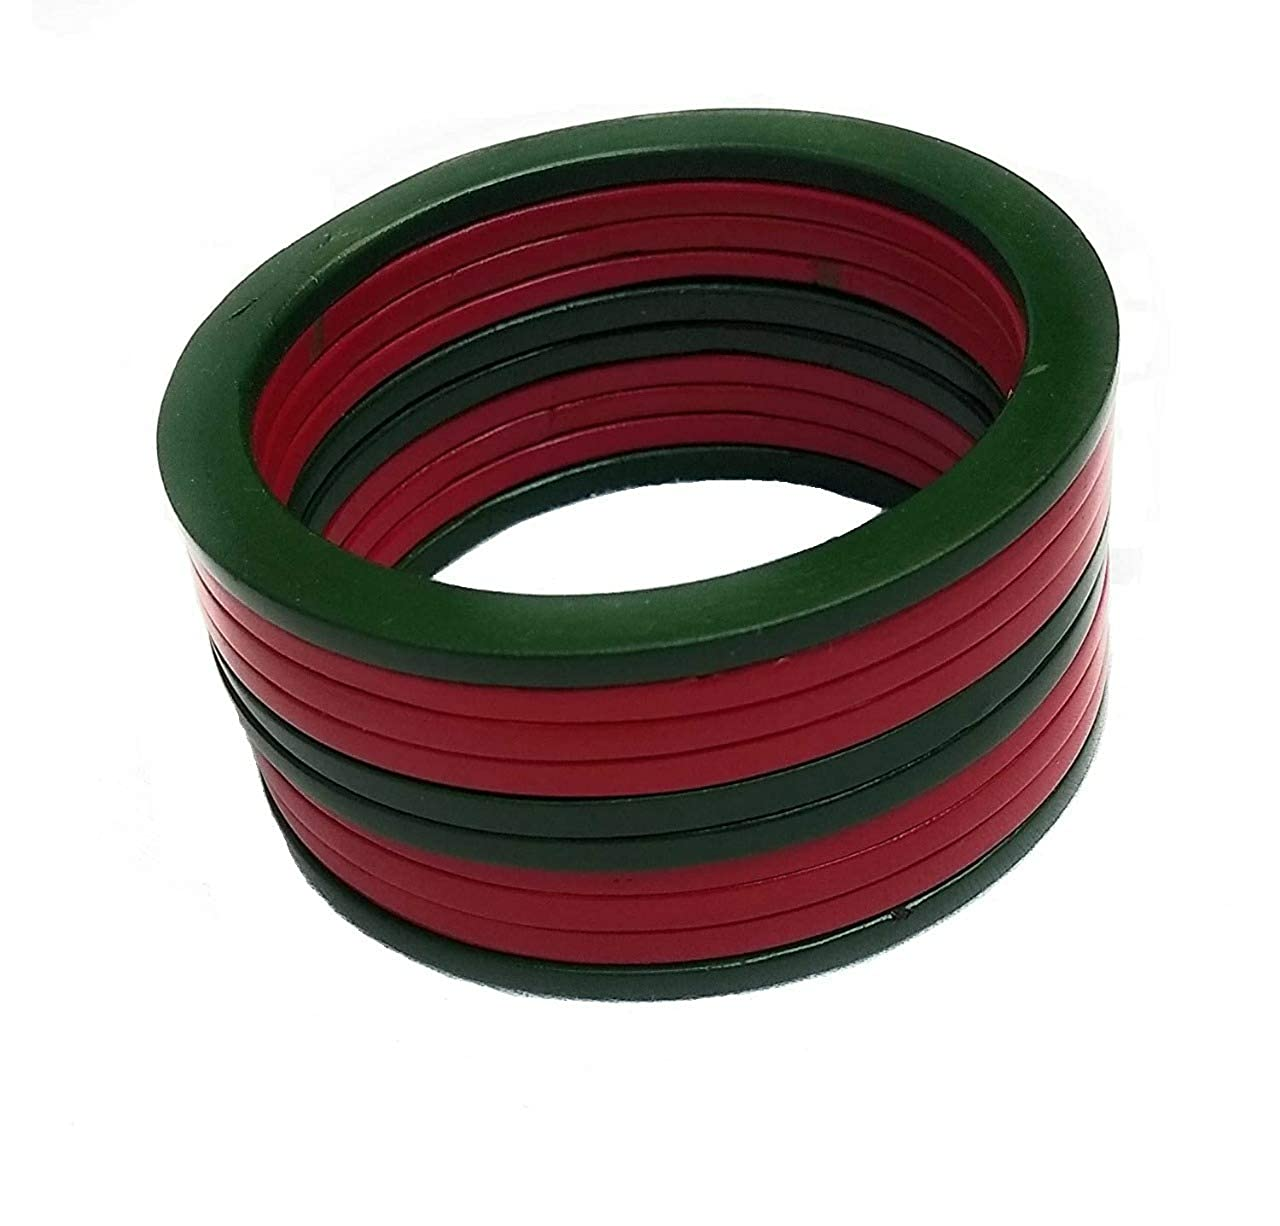 Buy Amazon Shopping Green Red Patti Plain Lac Bangle For Women 2 4 Set Of 10 Pieces At Amazon In